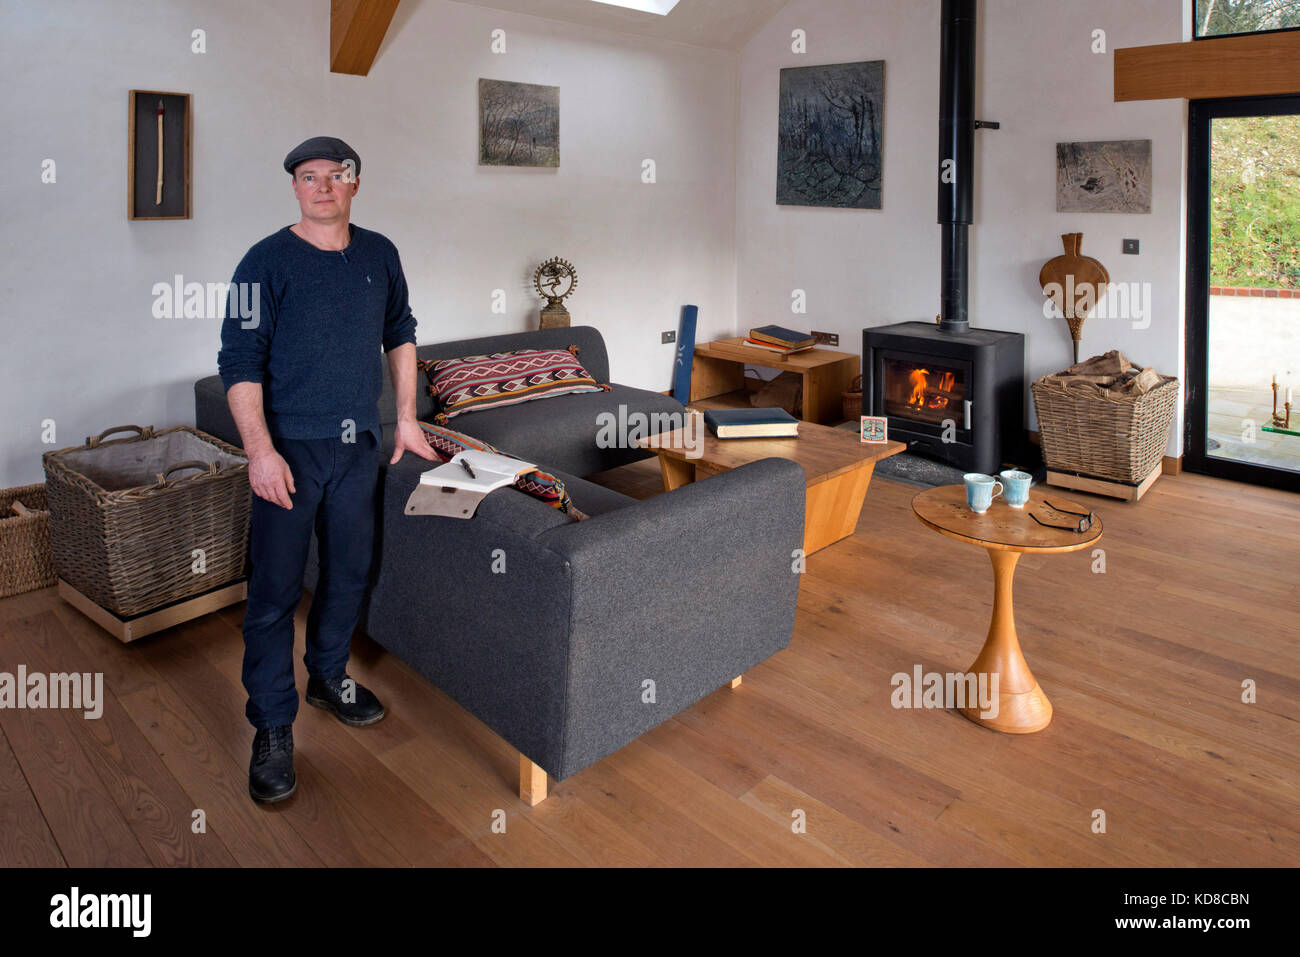 Elegant Furniture Maker James Verner At His Home In Dorset.   Stock Image